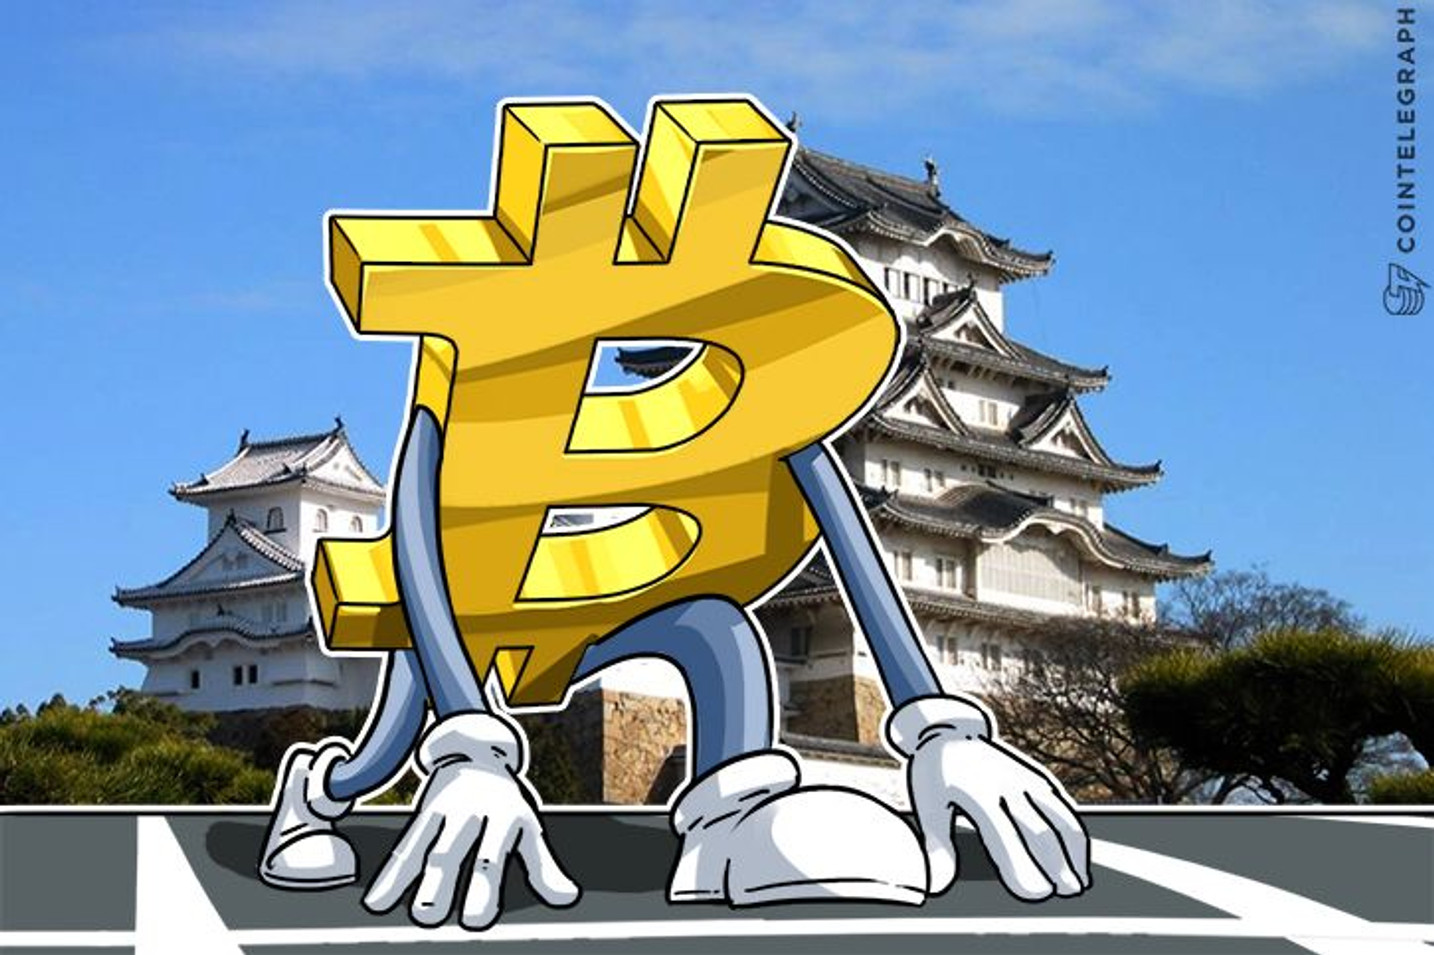 BITPoint Joins Race To Take Bitcoin To Japanese Retail